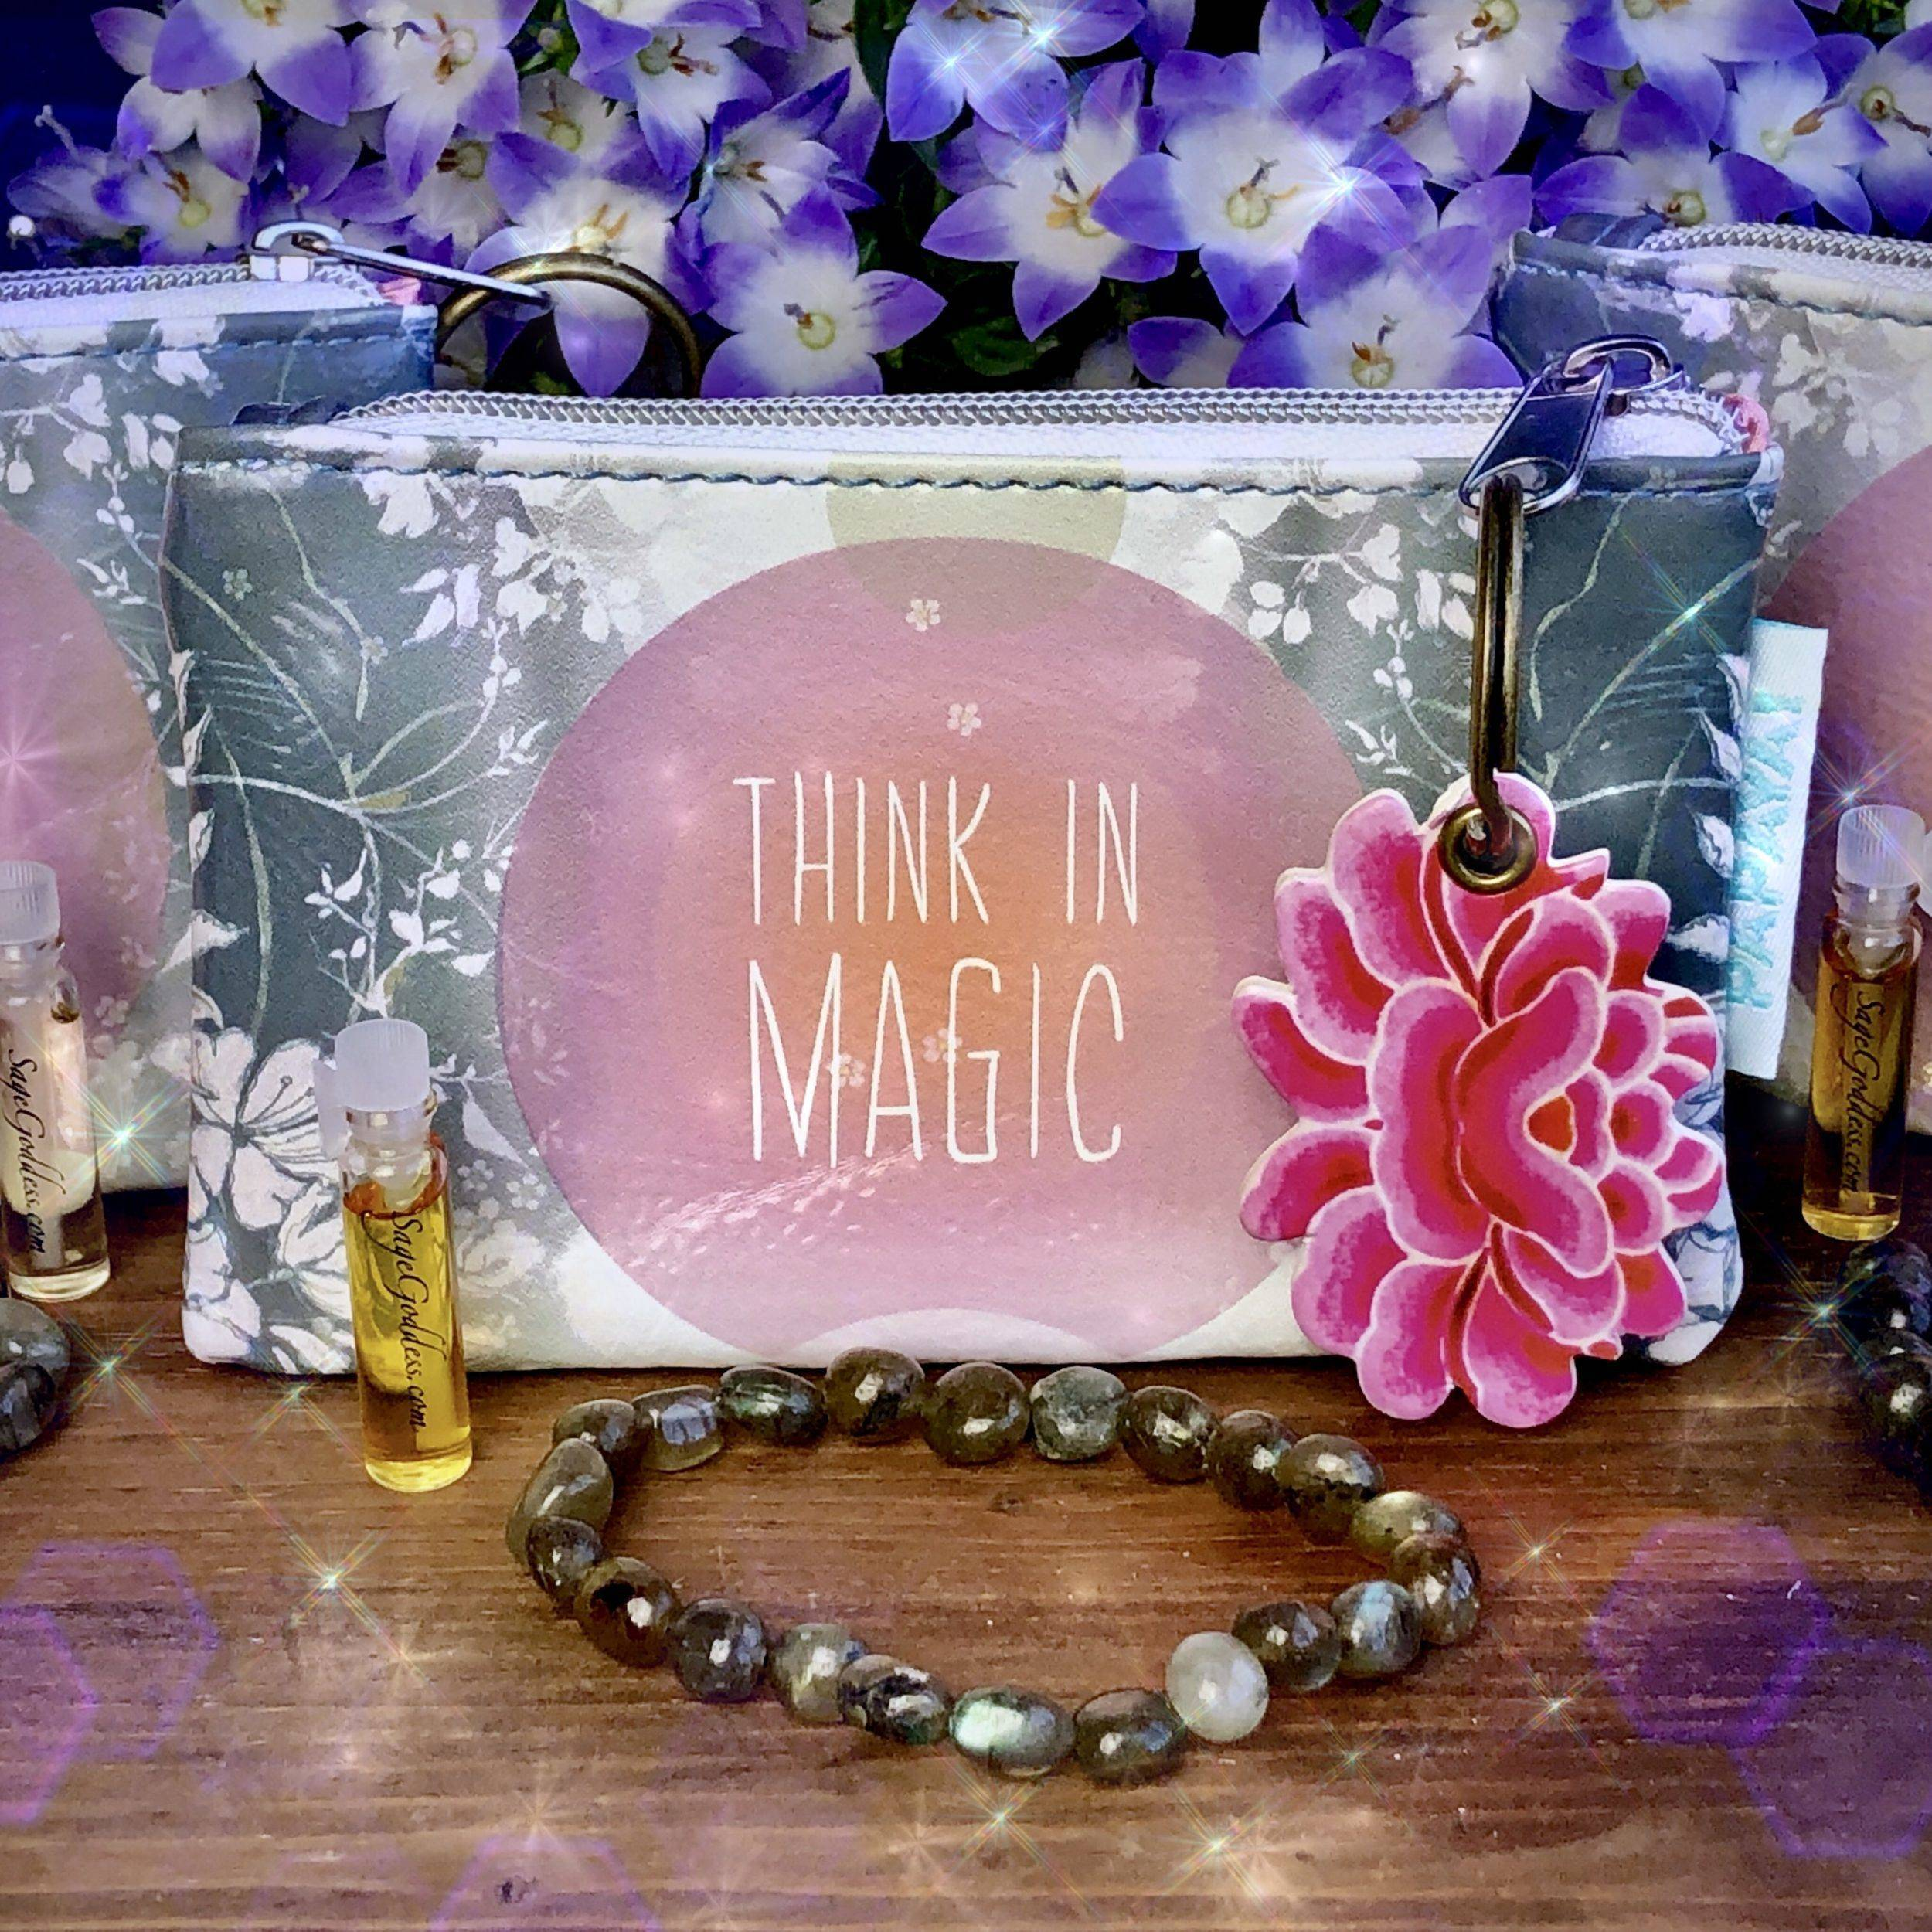 Think_In_Magic_Bags_1of3_11_19